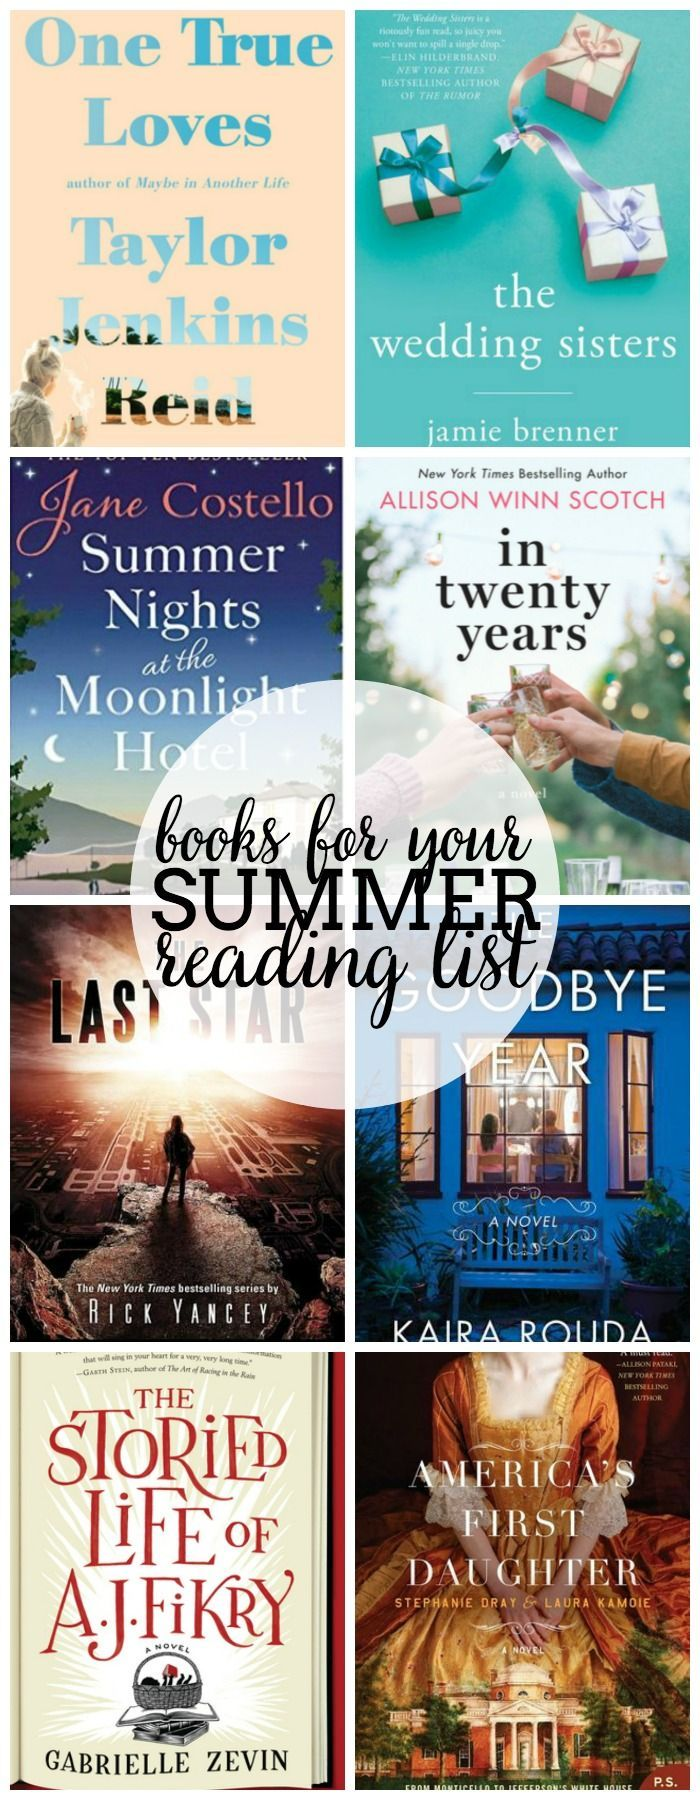 Looking for books to add to your Summer Reading List? I'm sharing 16 books I've added to my 2016 Summer Book List with a mix of romance, YA Lit, mysteries, and more! | The Love Nerds